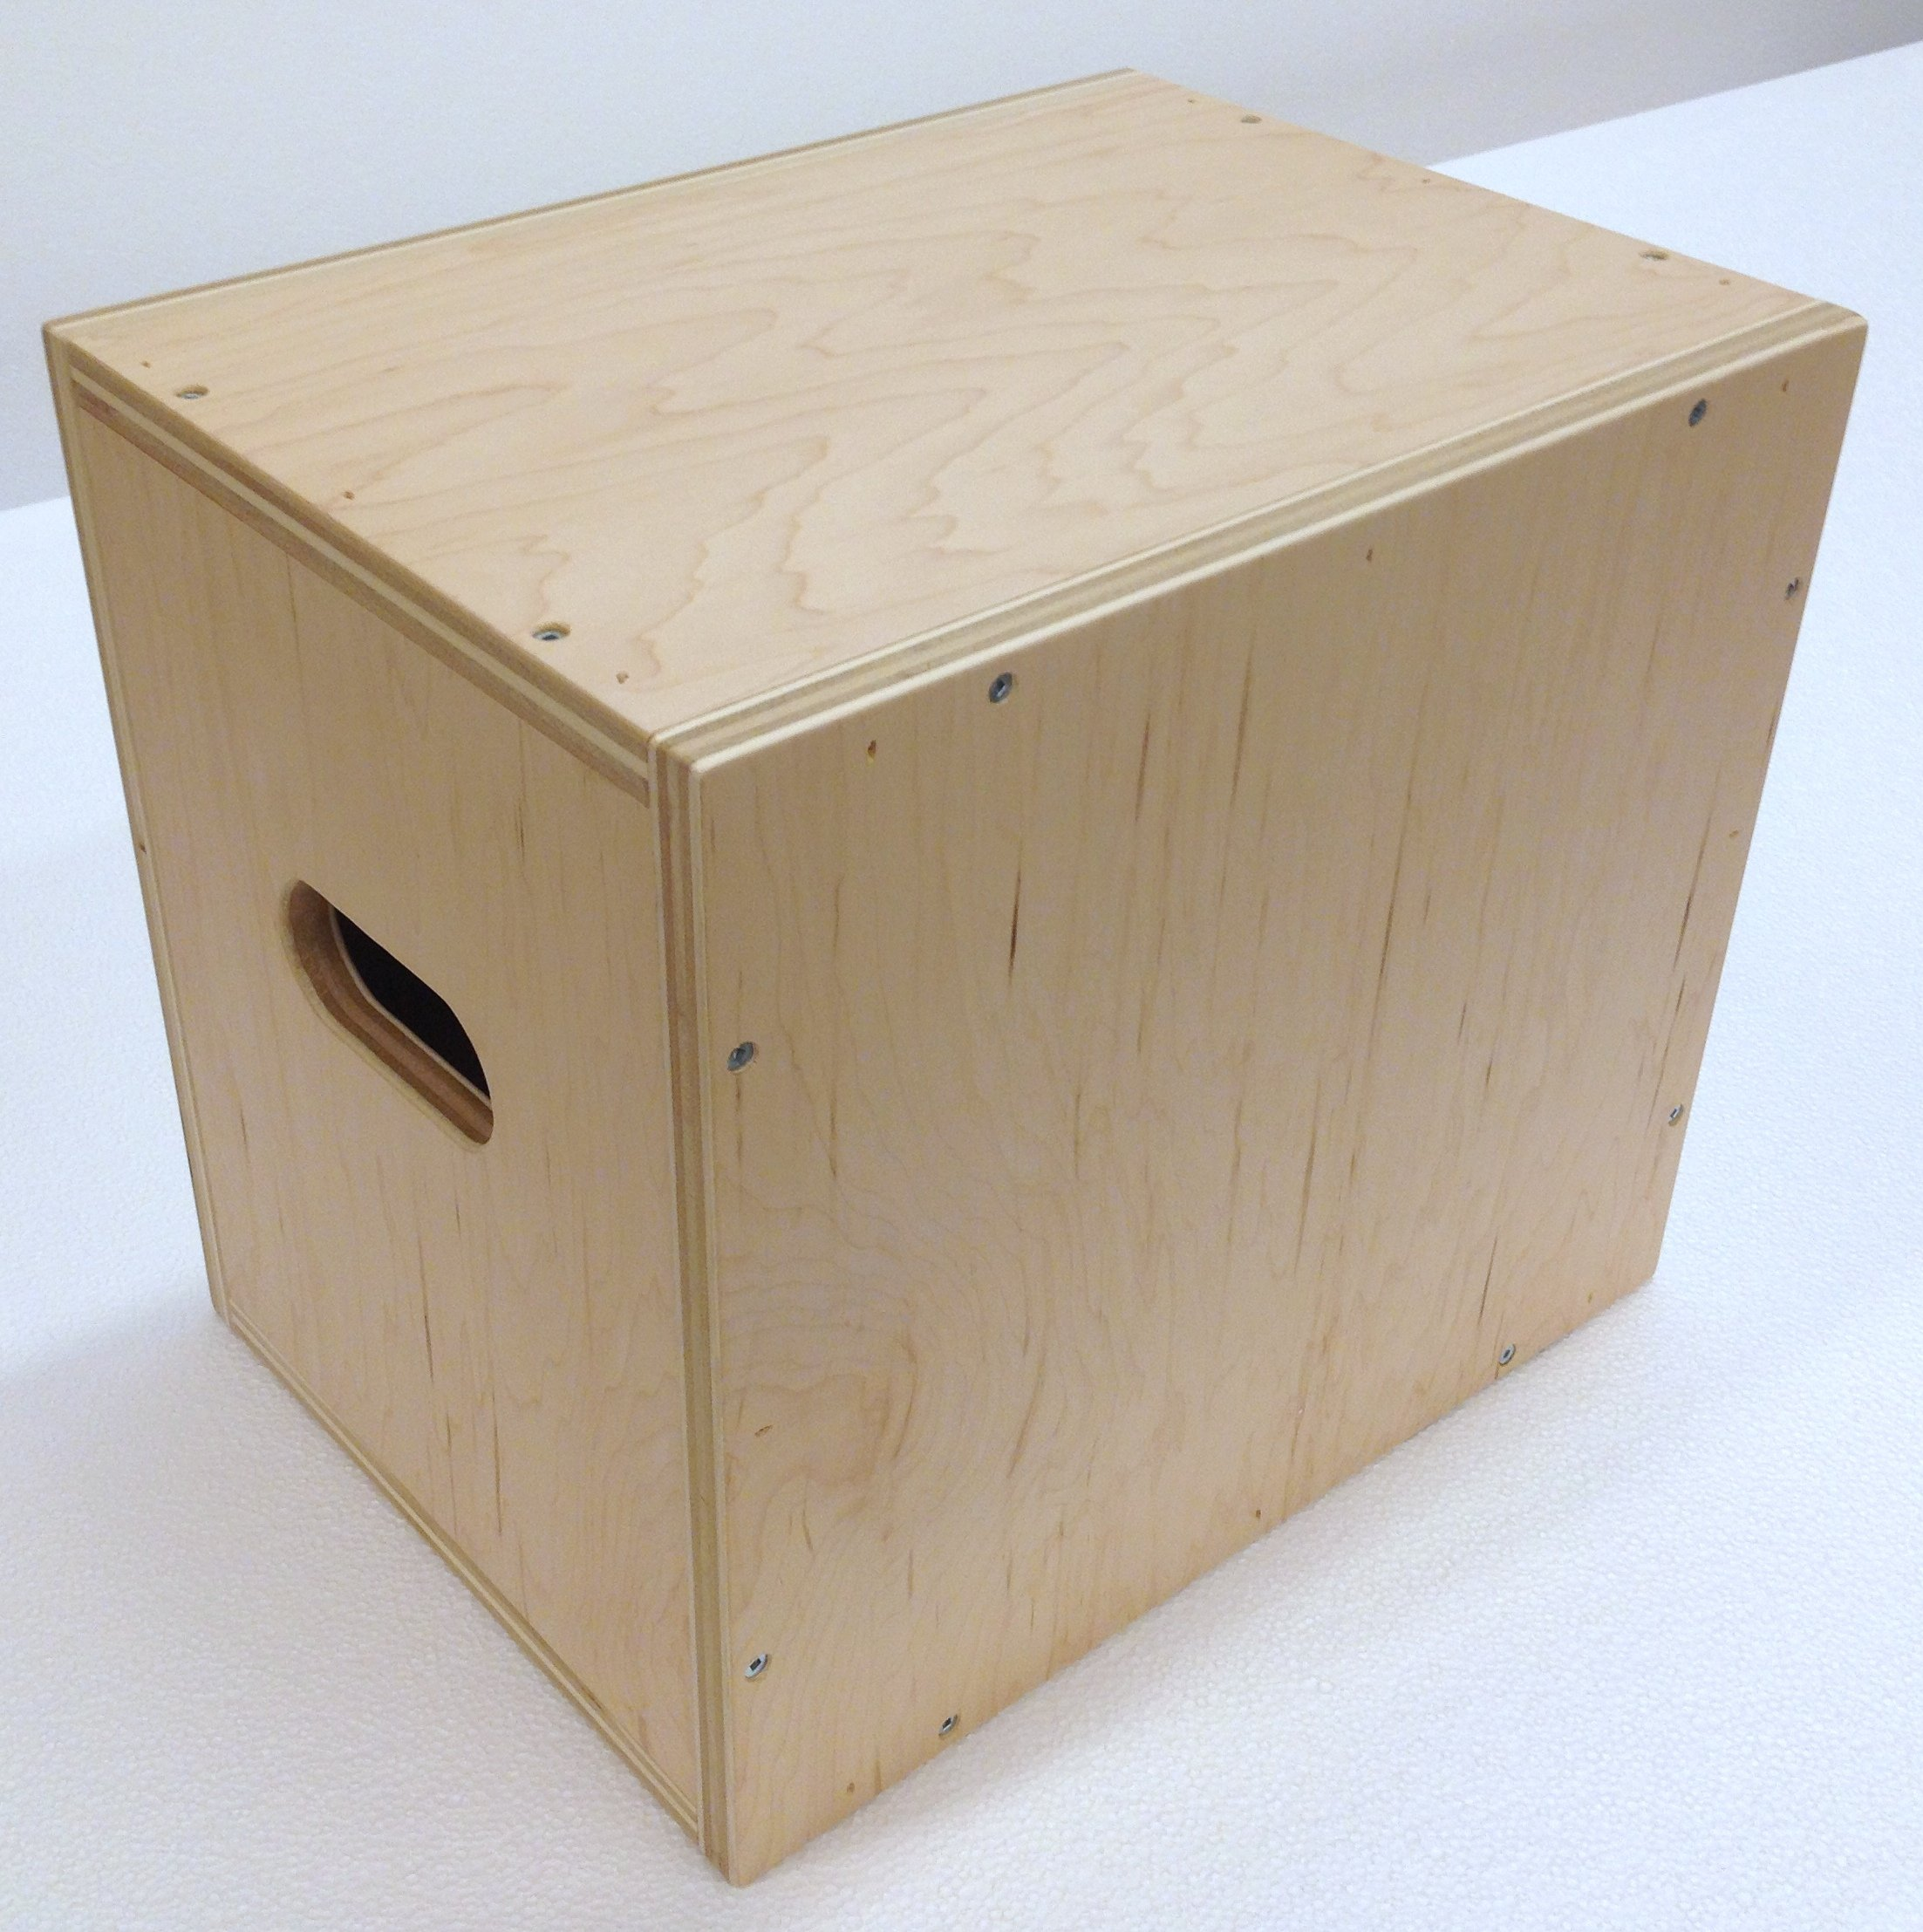 3 in 1 Plyometric Box: 12''x14''x16'' Flatpack